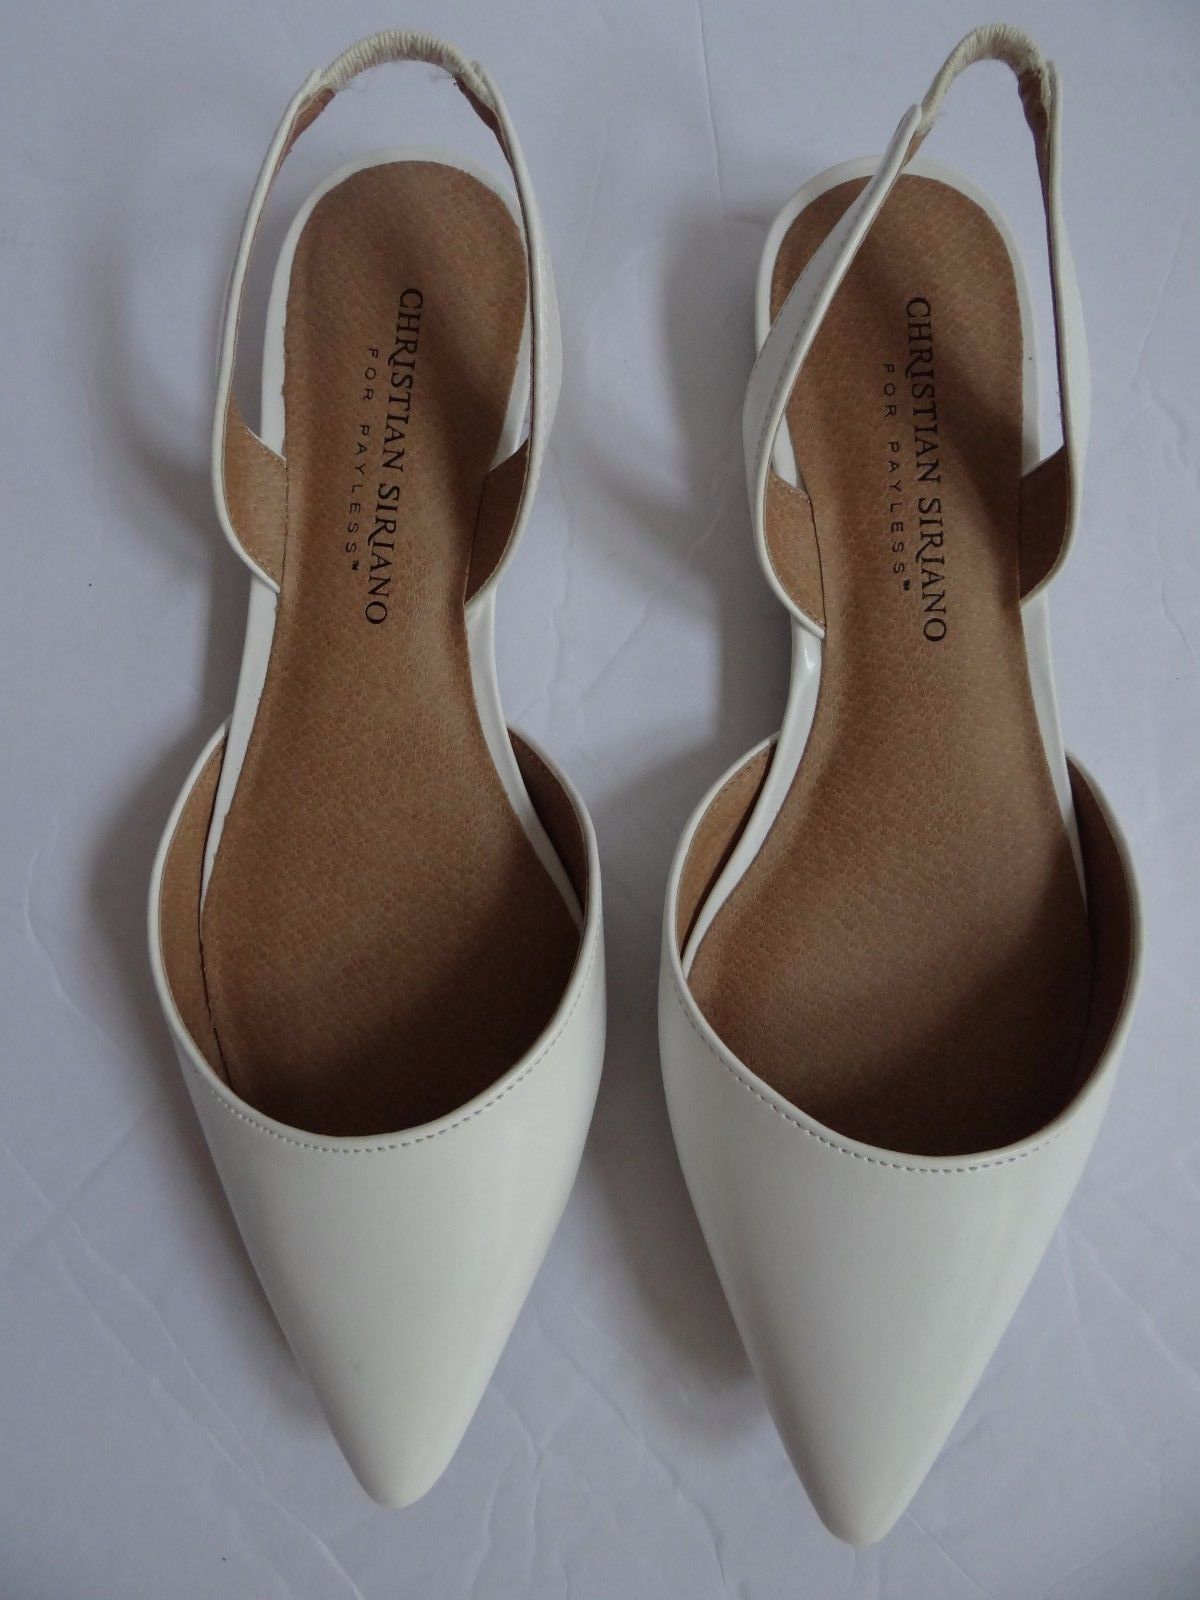 d47afeff95751 Details about Christian Siriano For Payless Slip On Ballet Flats ...